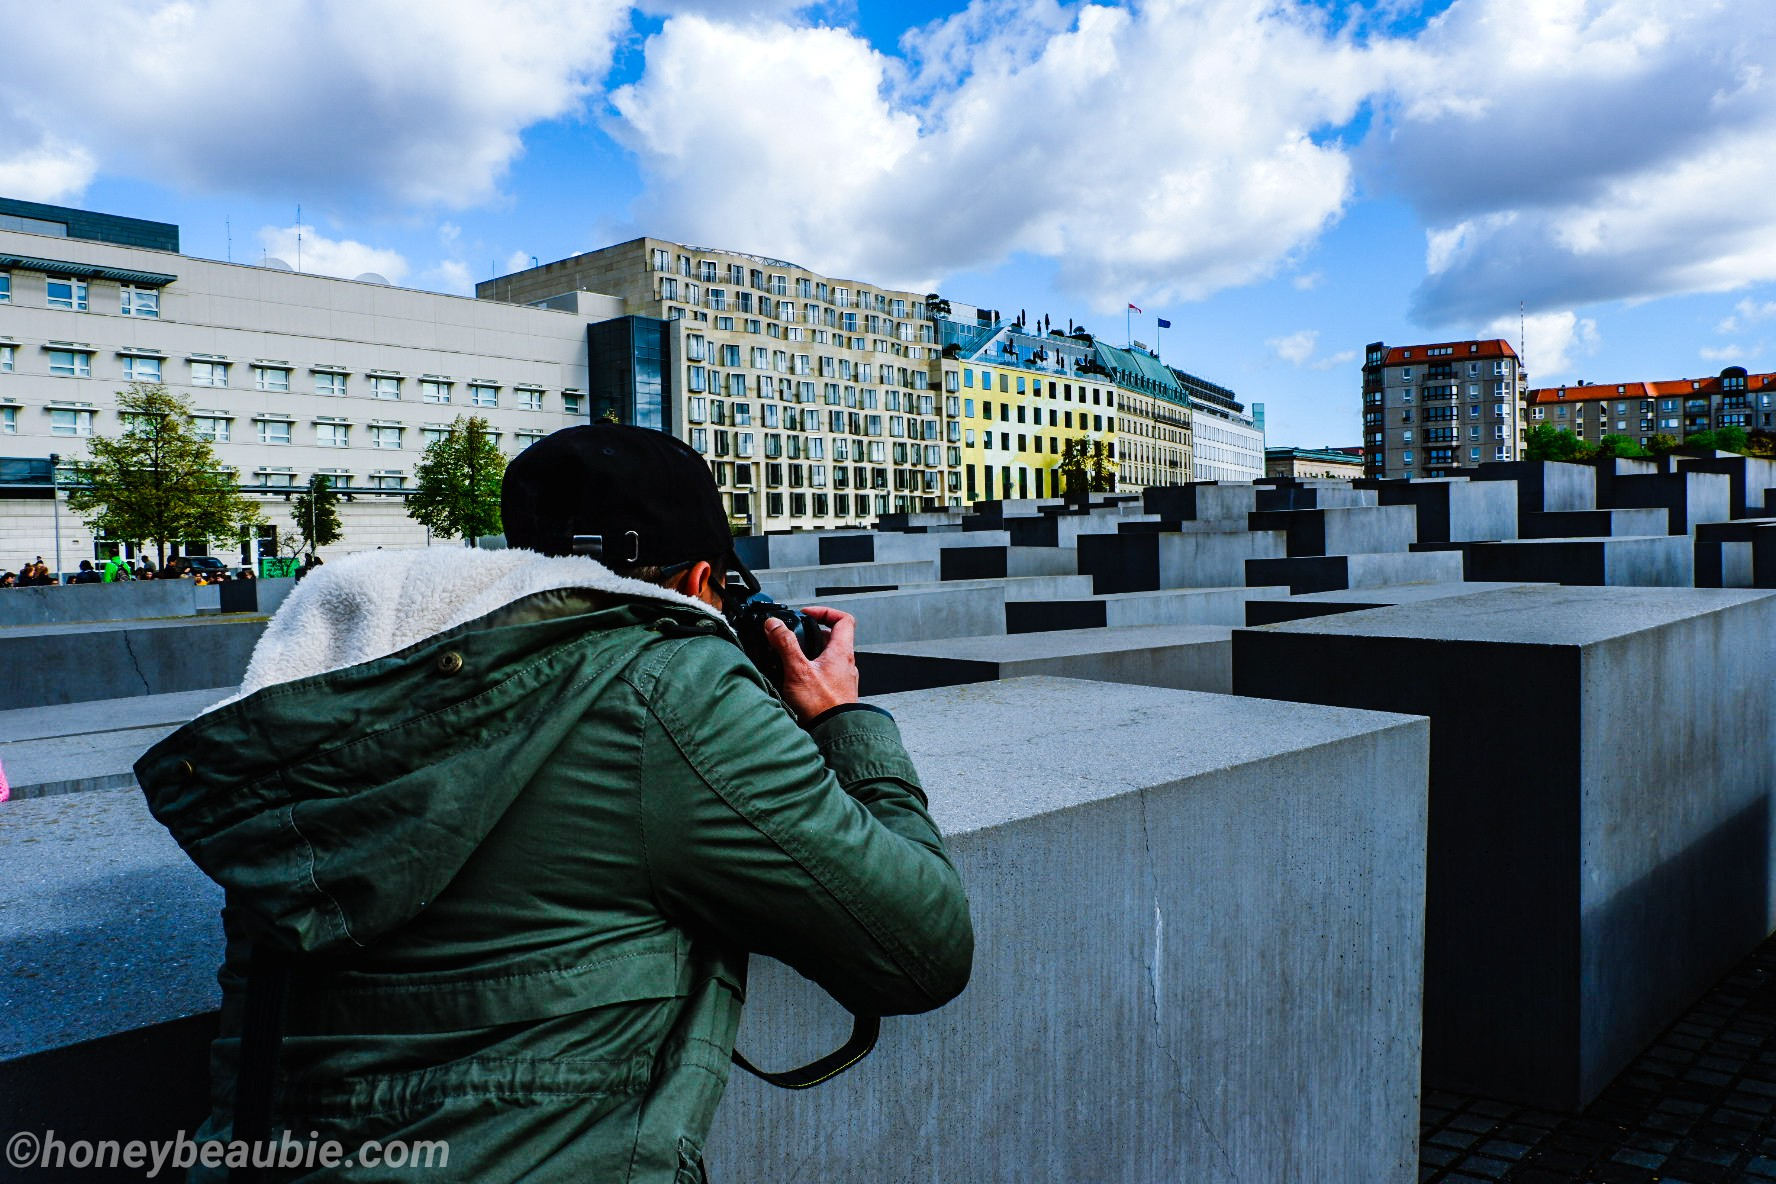 berlin-holocaust-memorial-and-museum